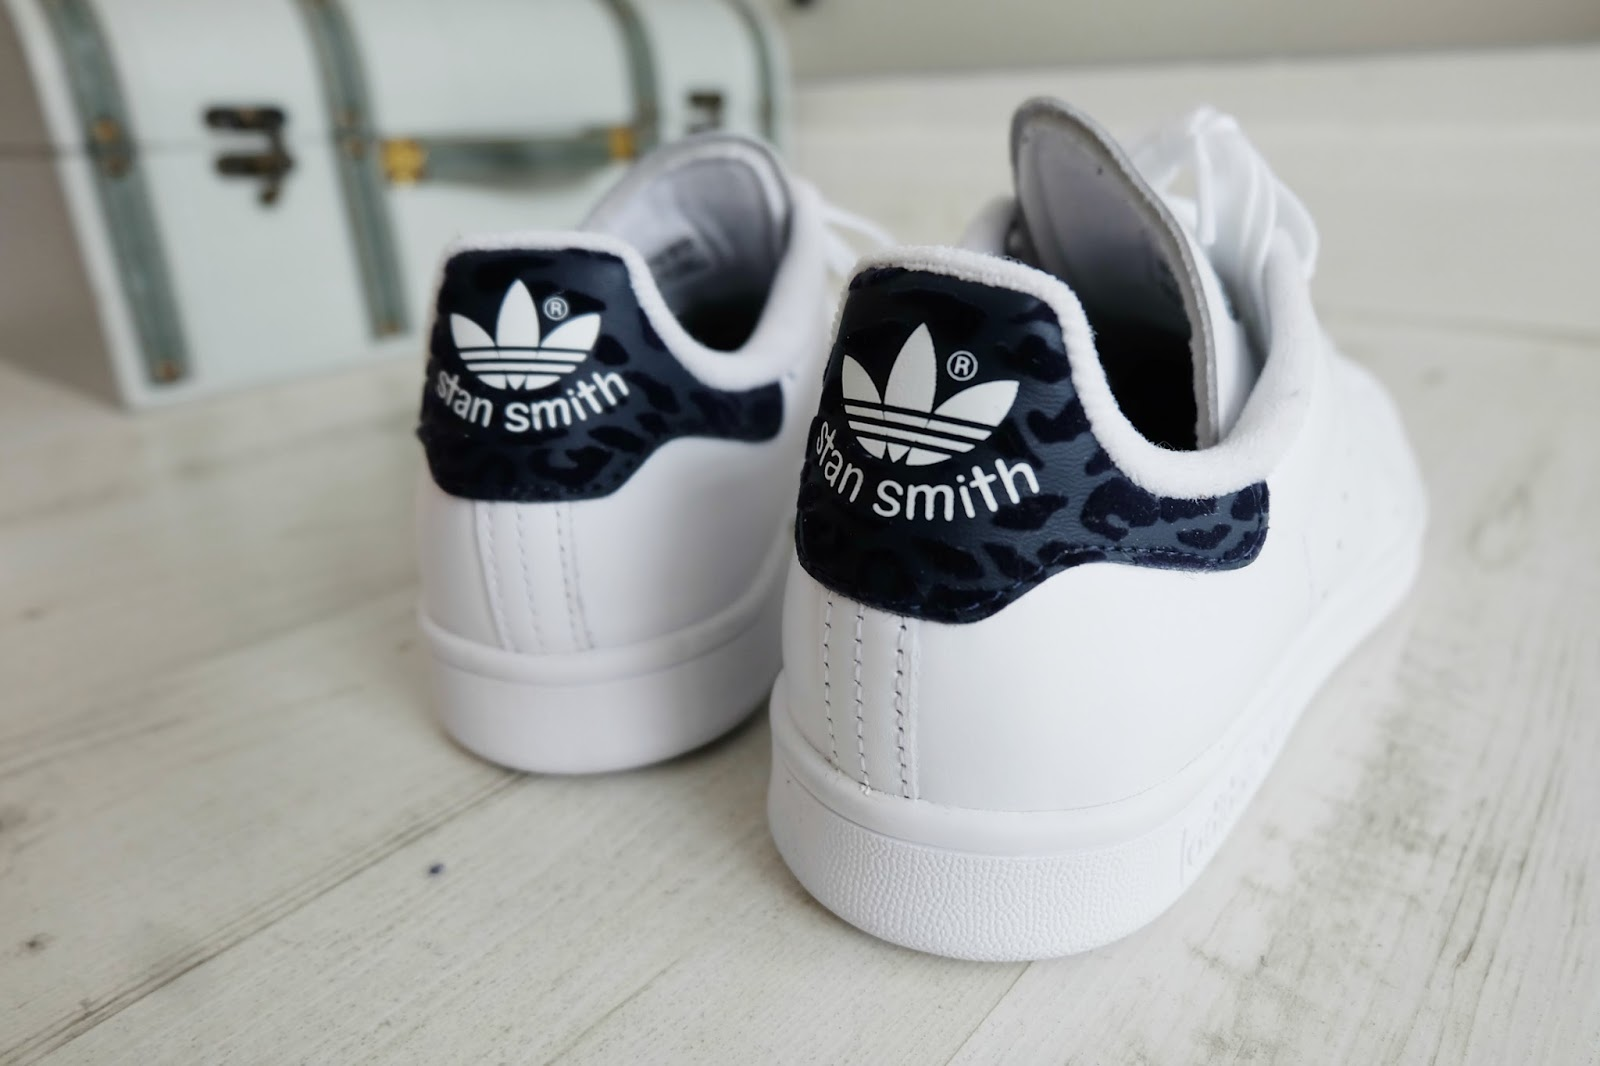 Adidas Stan Smith white and navy leopard print, Adidas Stan Smith white and navy leopard print review